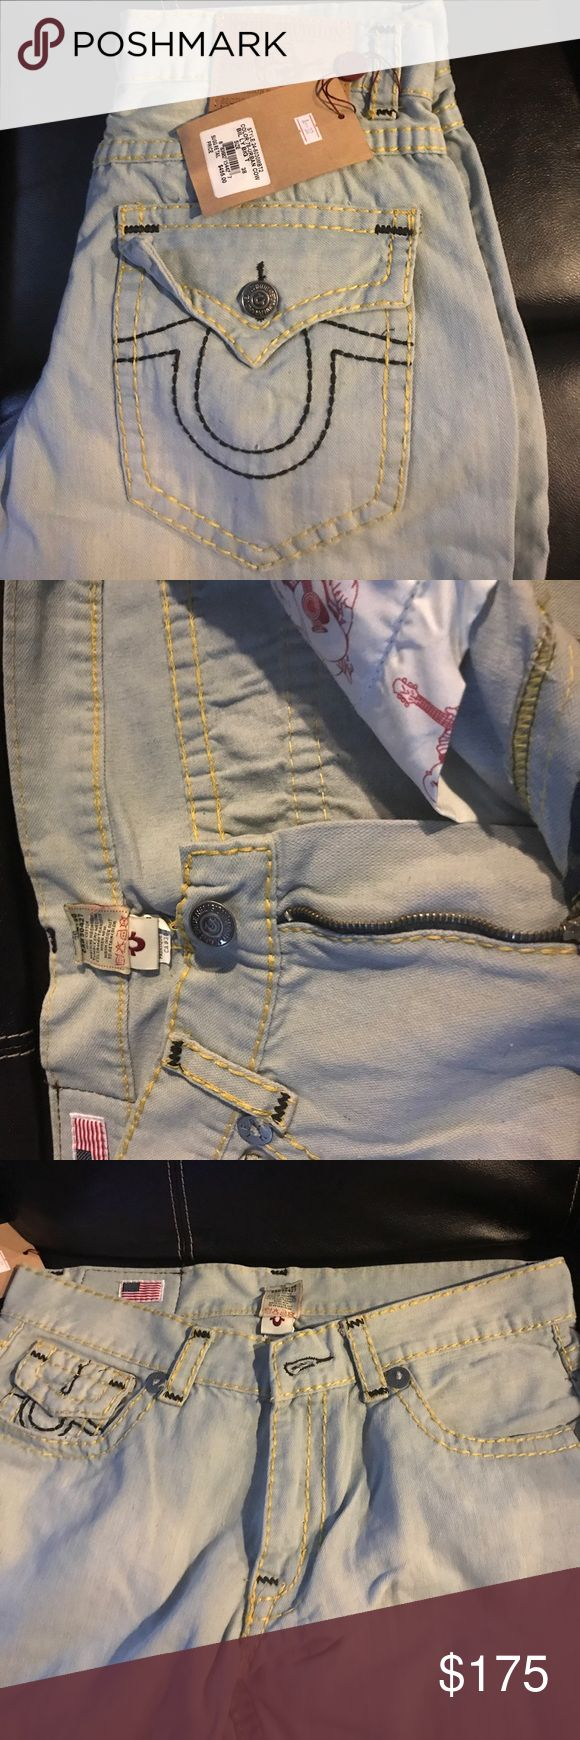 True religion jeans True religion jeans True Religion Jeans Relaxed